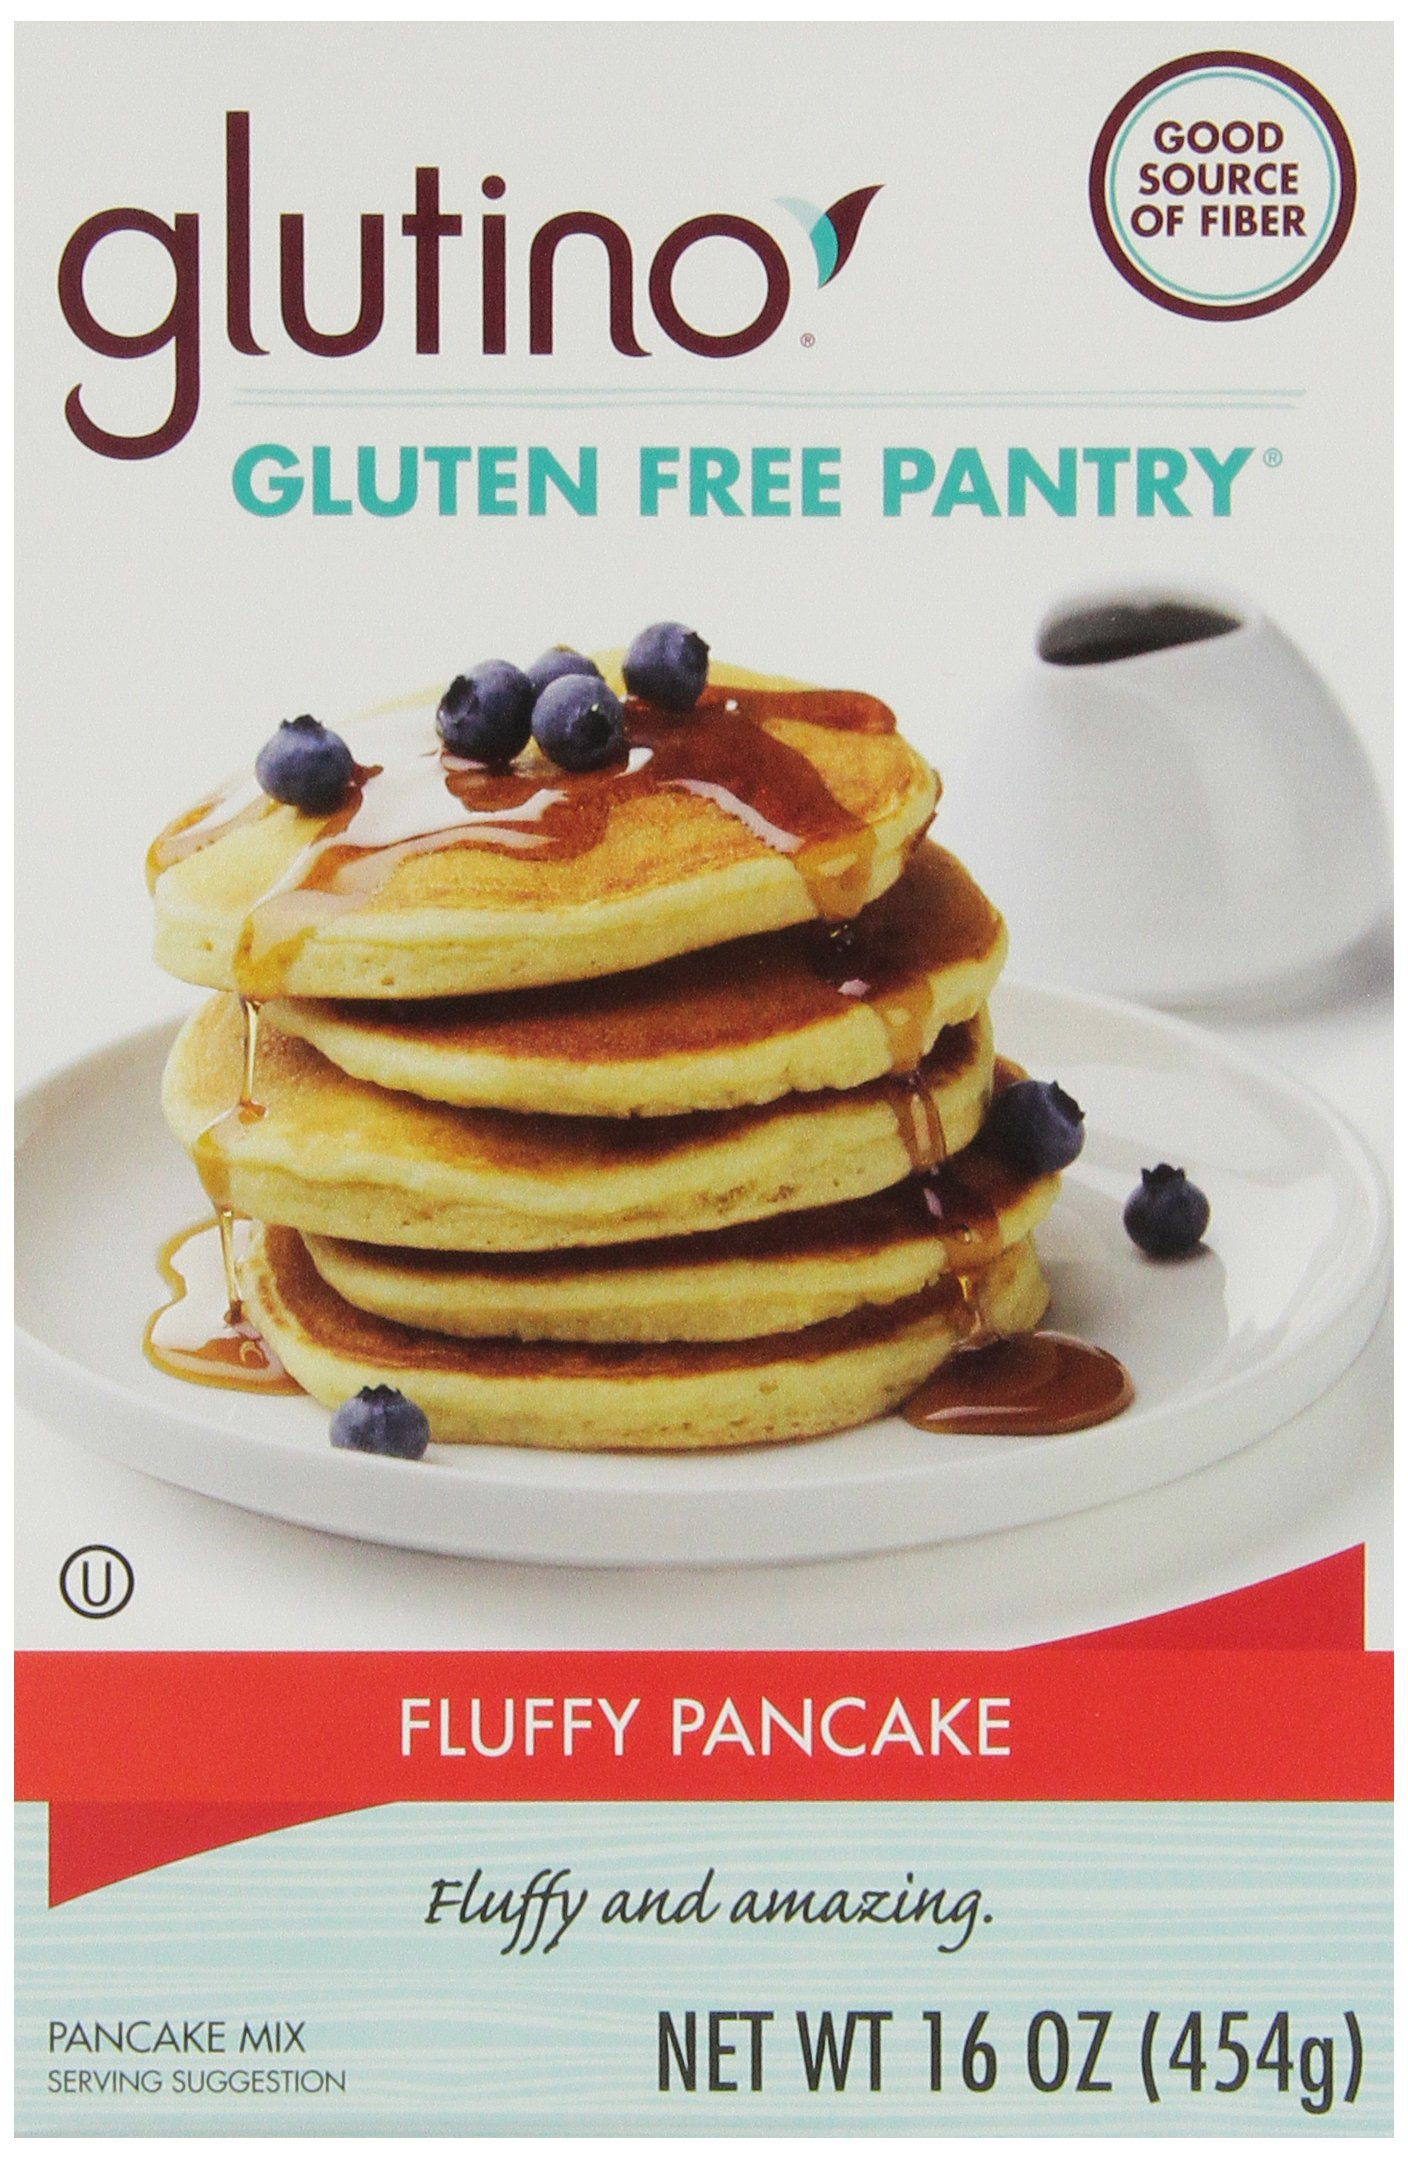 Gluten Free Pantry Brown Rice Pancake Mix, 16 Ounce - 6 per case.